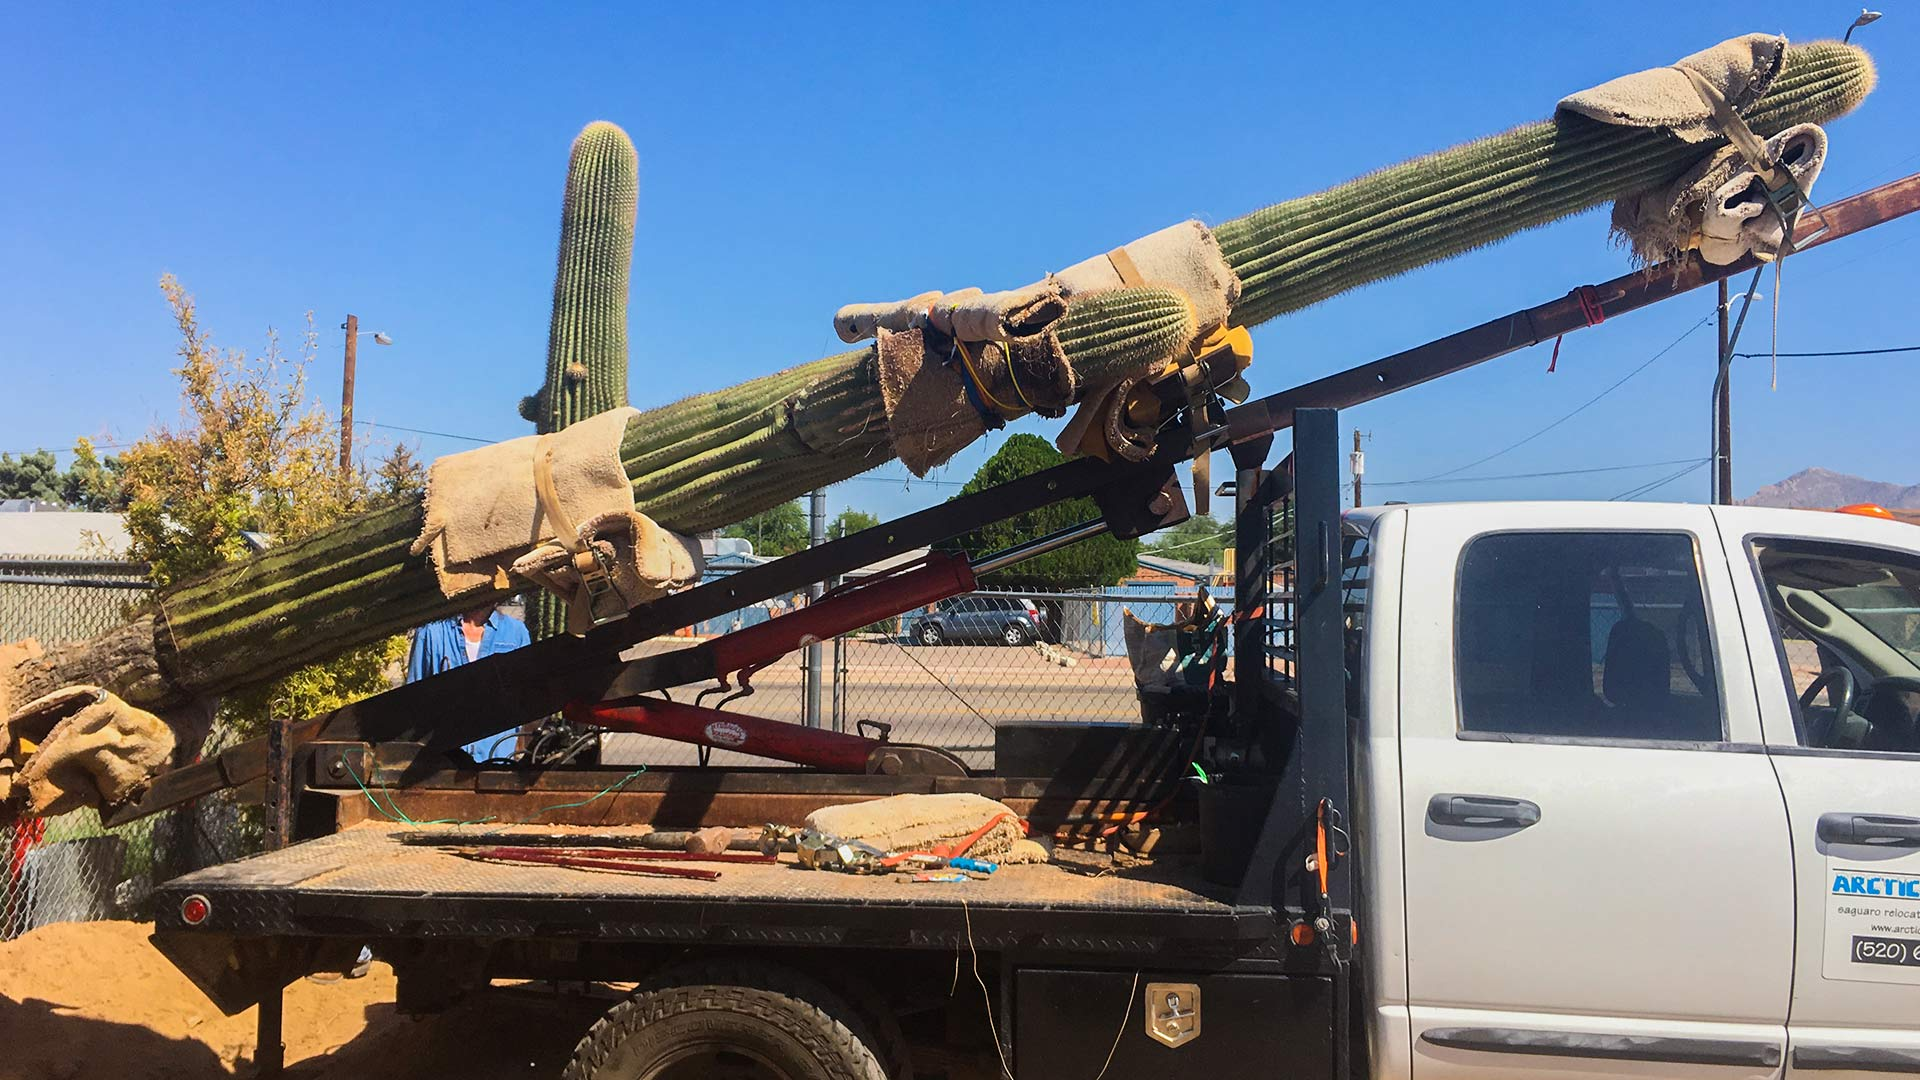 Southern Arizona business officials are sending this Saguaro cactus to Amazon as the beginning of the area's bid to convince the company to locate its second headquarters in the region, Sept. 13, 2017.